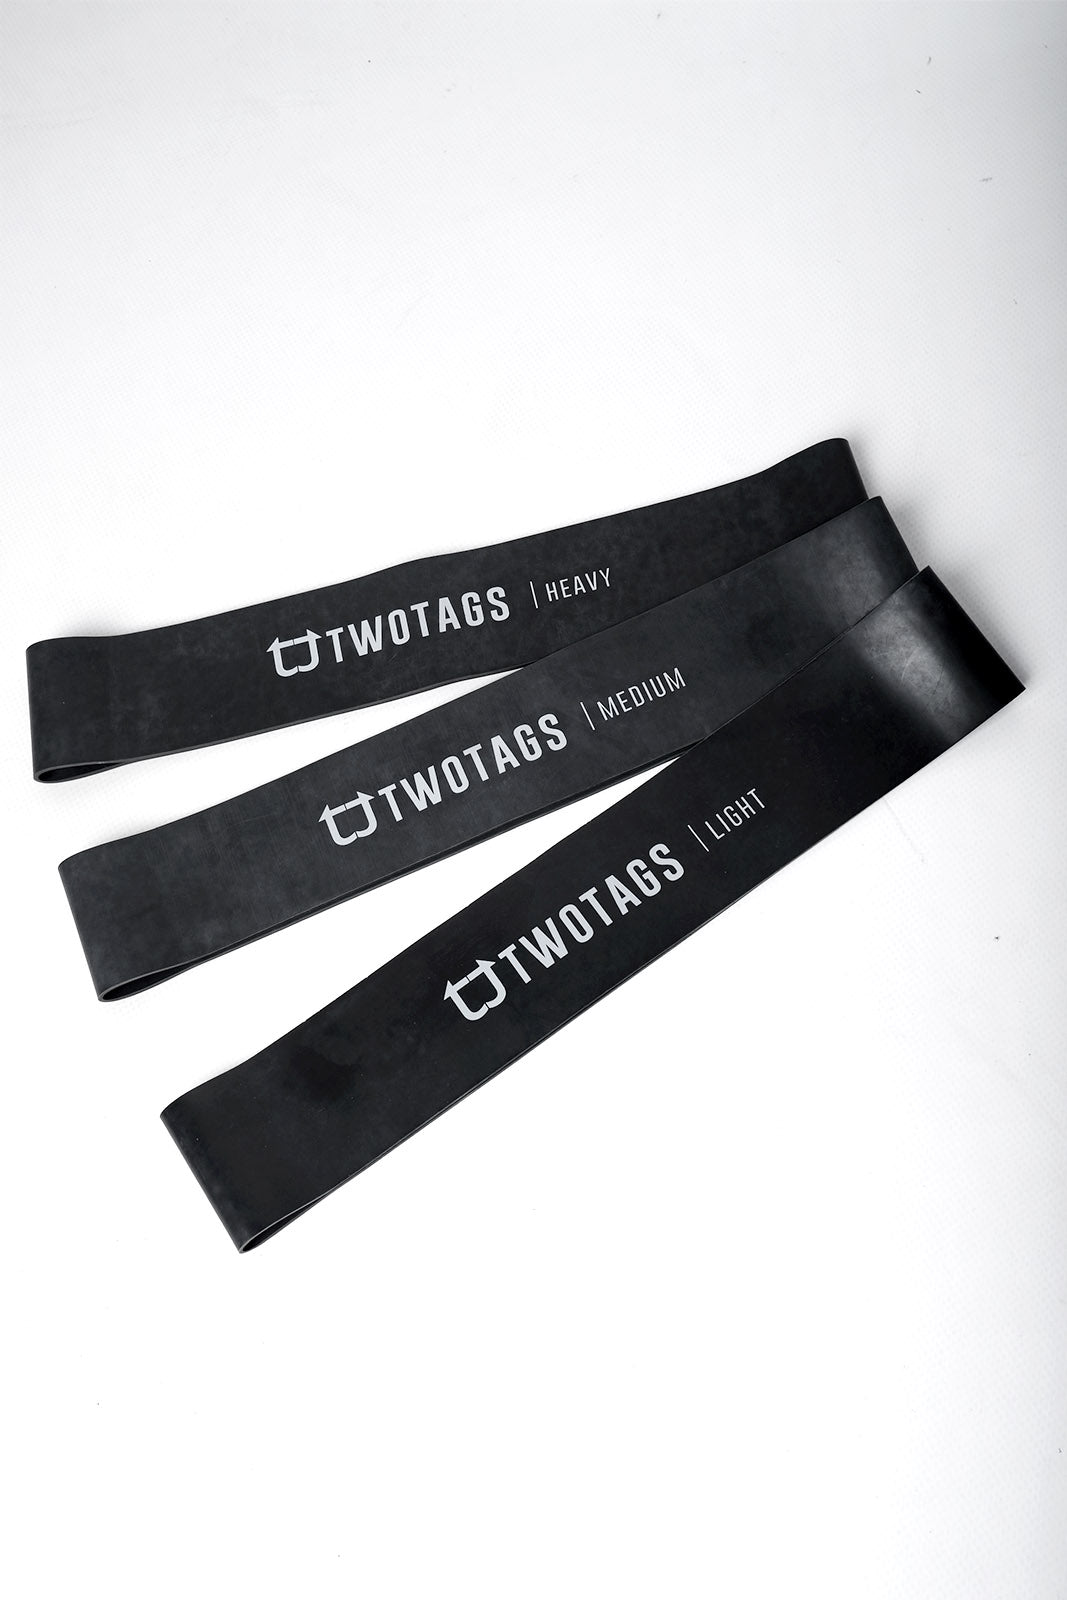 Twotags Resistance Bands 3 Packs